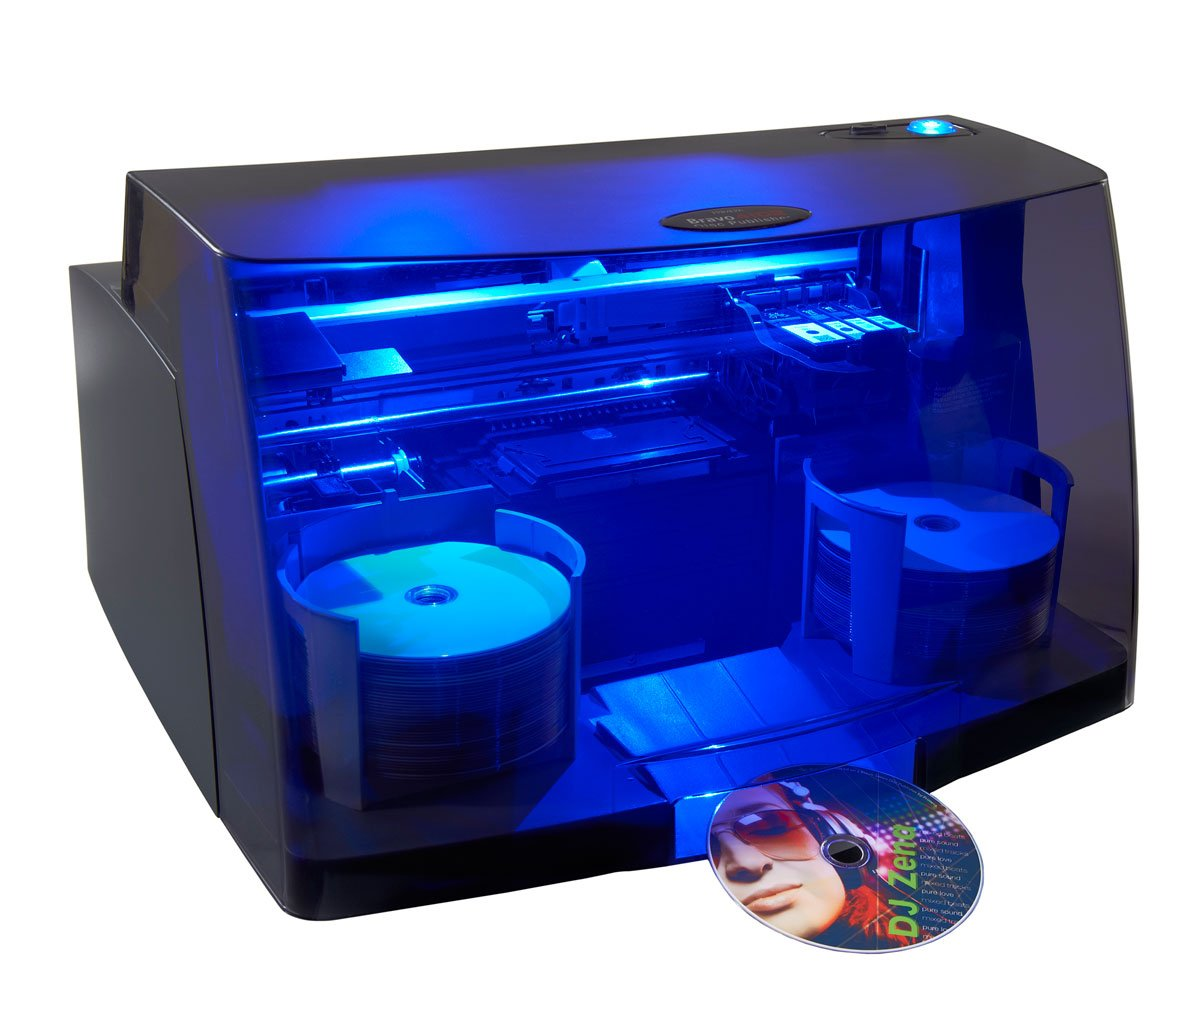 CD/DVD Publisher with 1 Recording Drive, 100 Disc Capacity